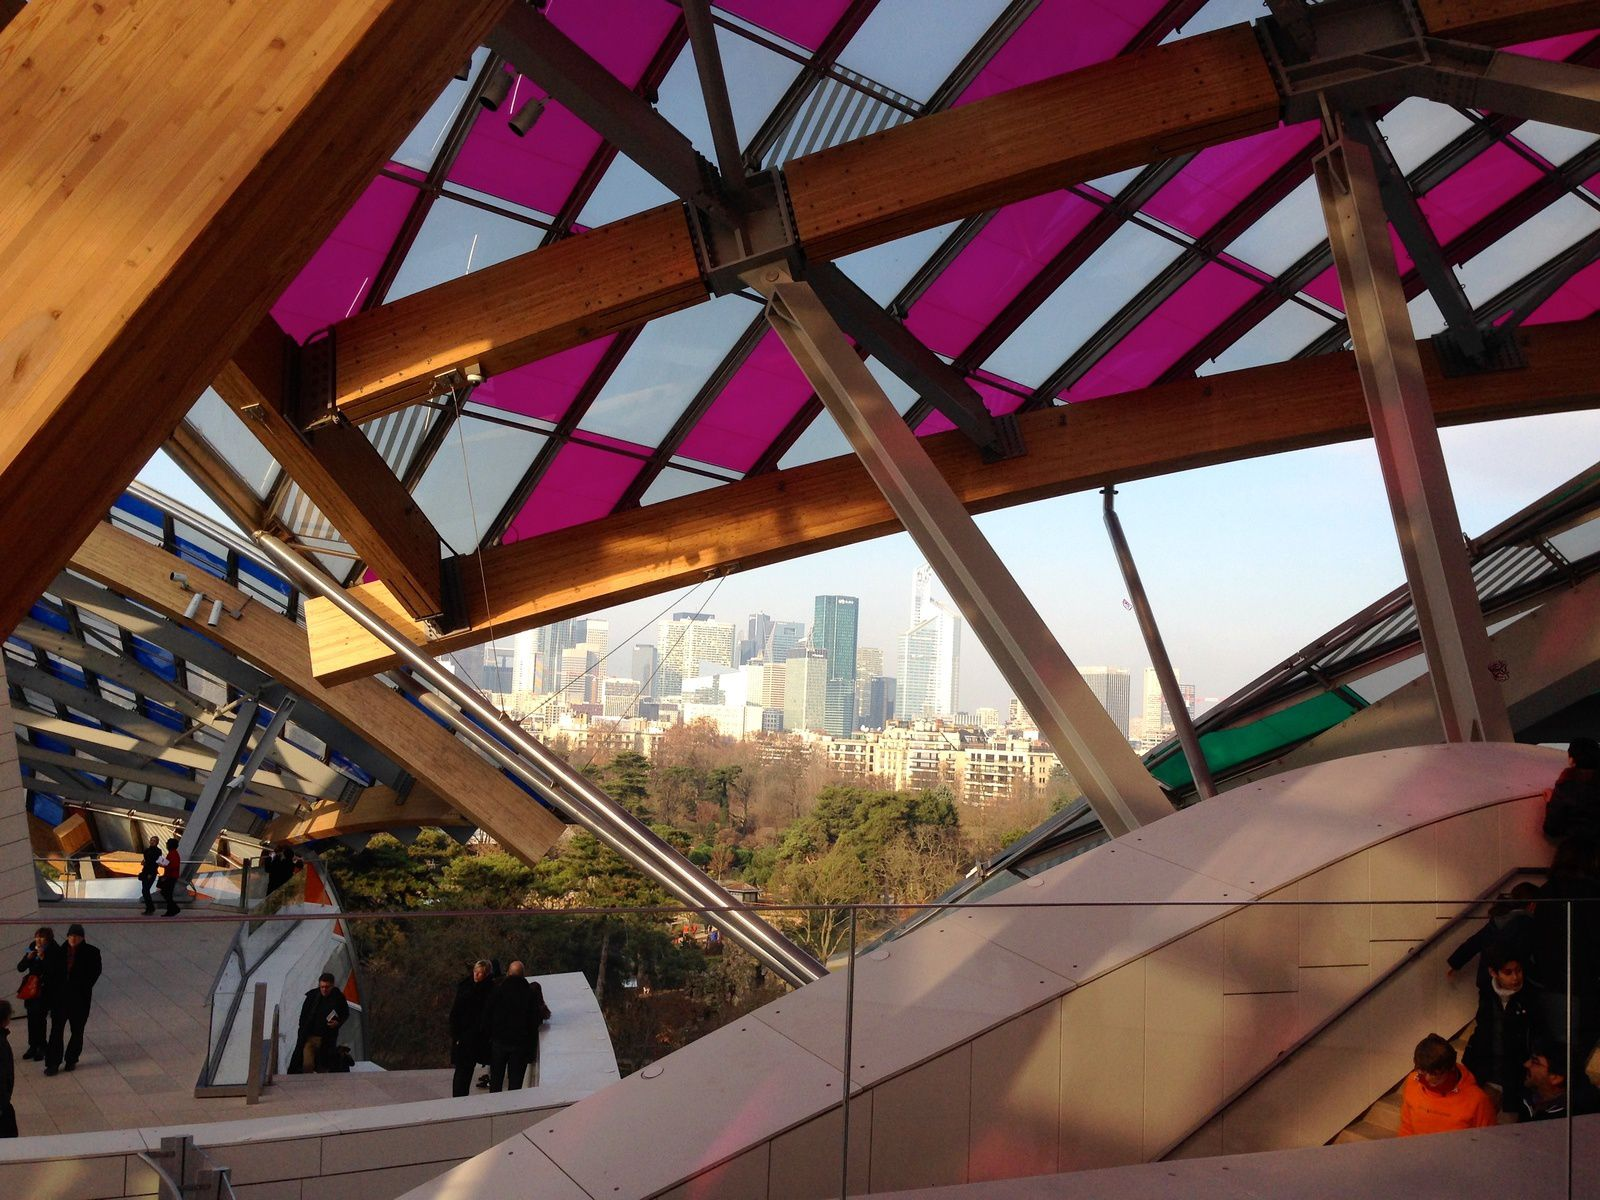 Jardin d'Acclimatation et Fondation Louis Vuitton - Paris